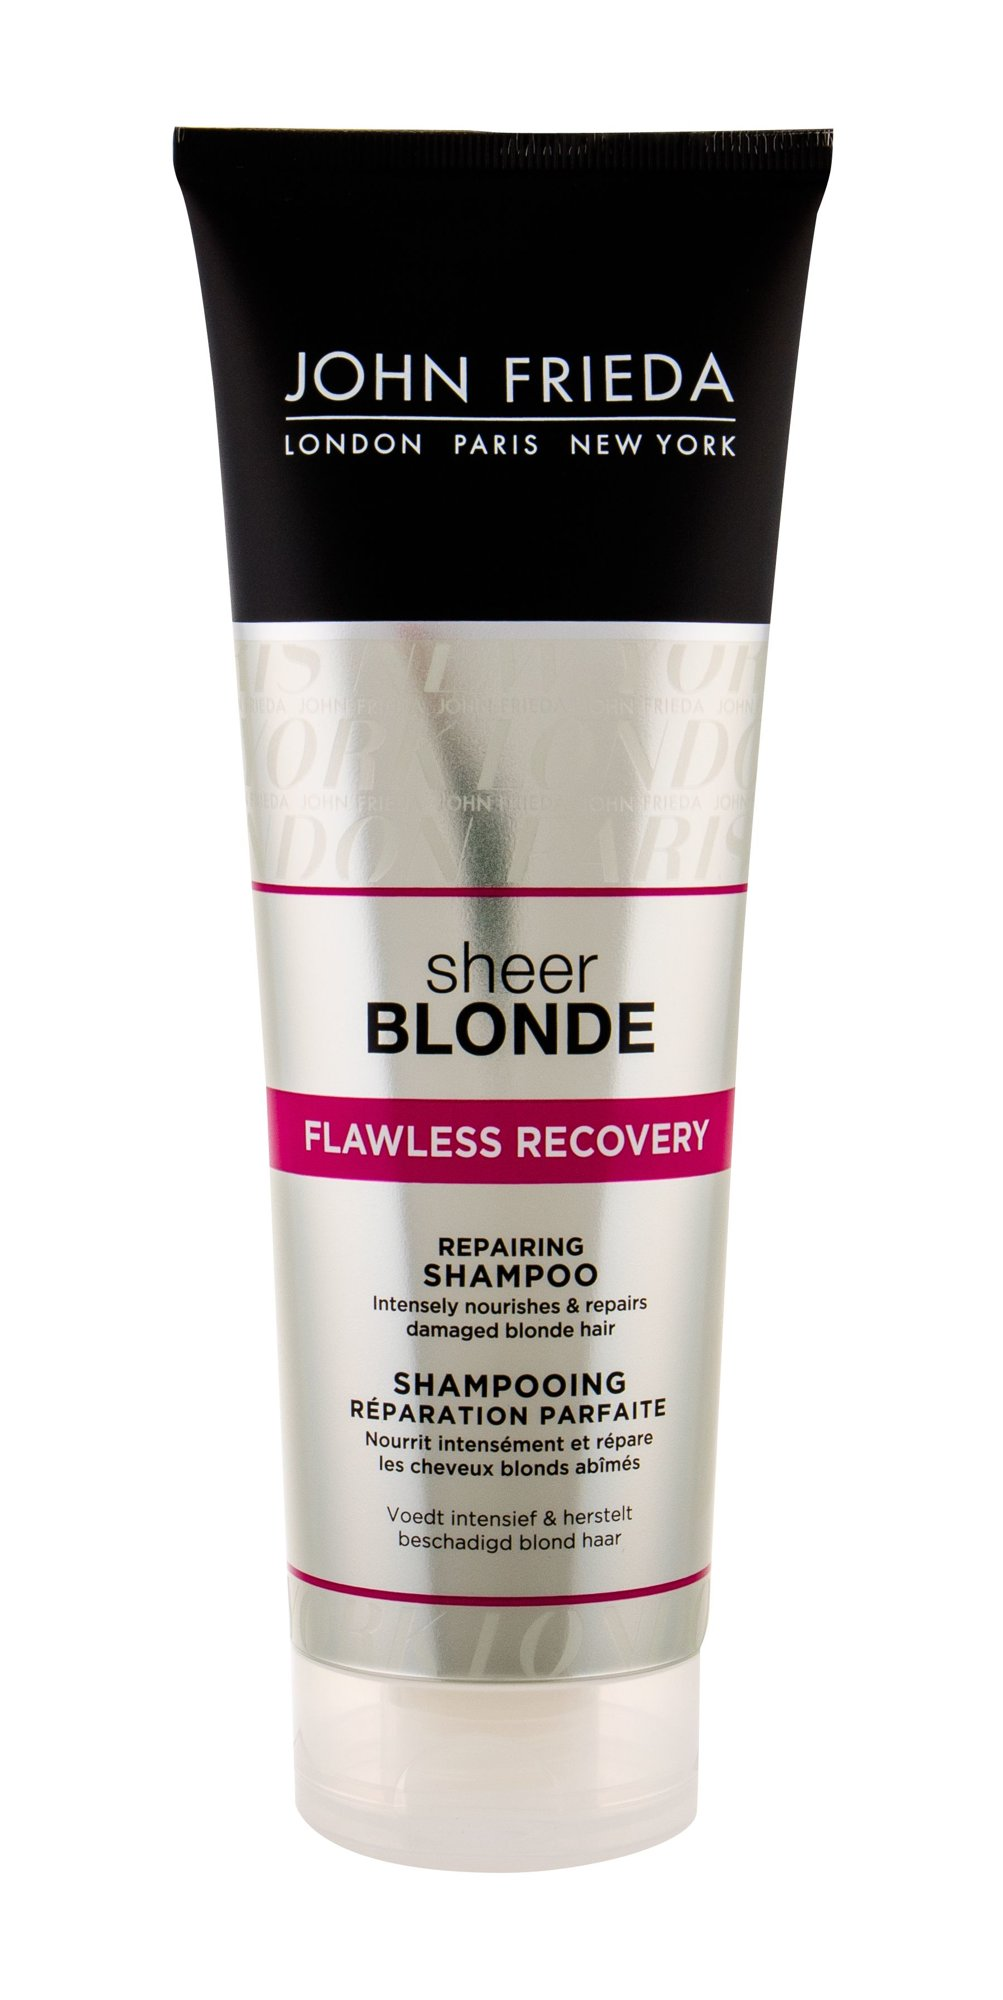 John Frieda Sheer Blonde Shampoo 250ml  Flawless Recovery